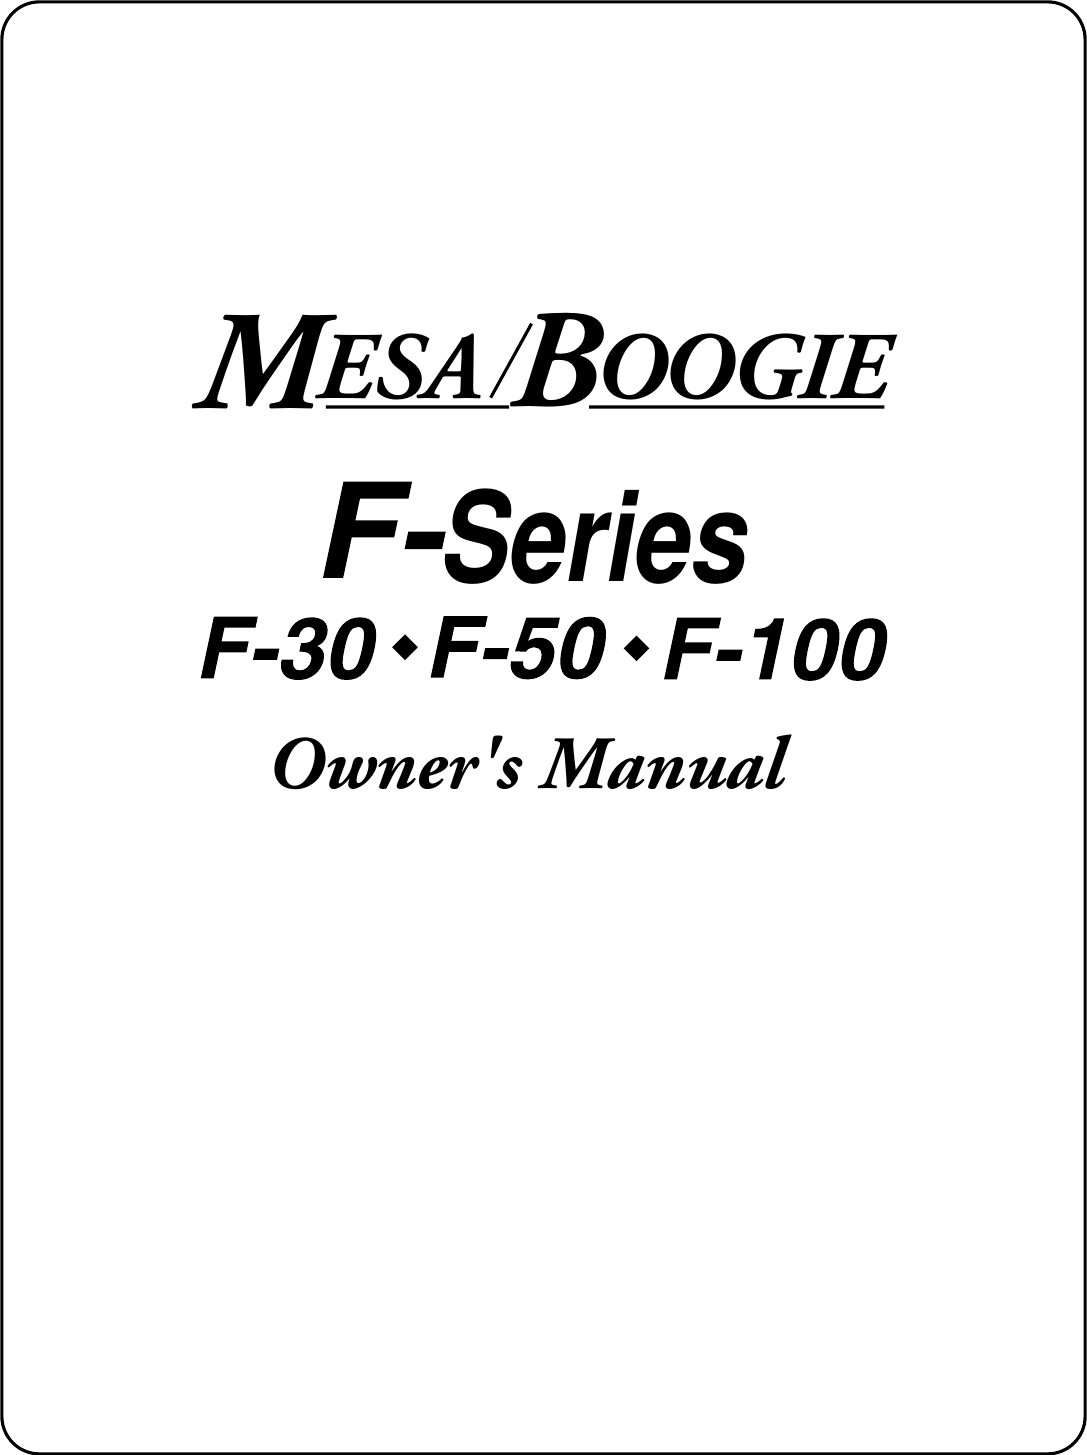 Mesa Boogie F 100 Users Manual Sers Jack Plate With Switch For Use Cabinets And More